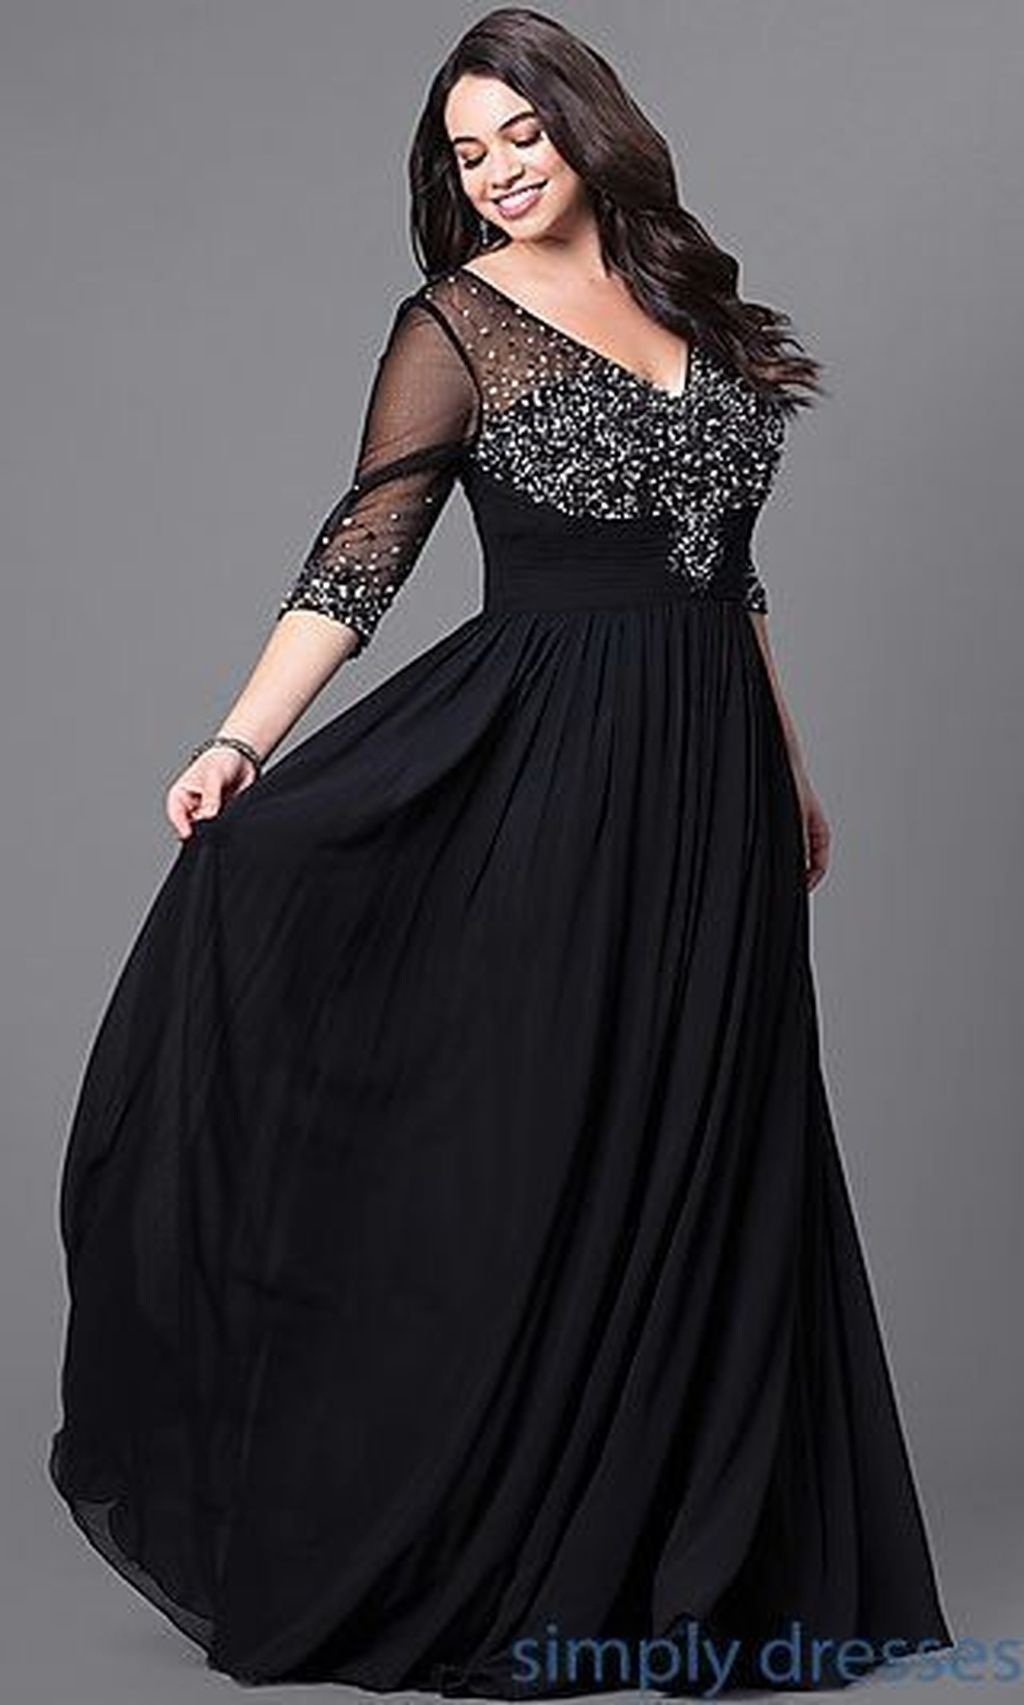 stunning plus size evening gown ideas rokke skoene pinterest